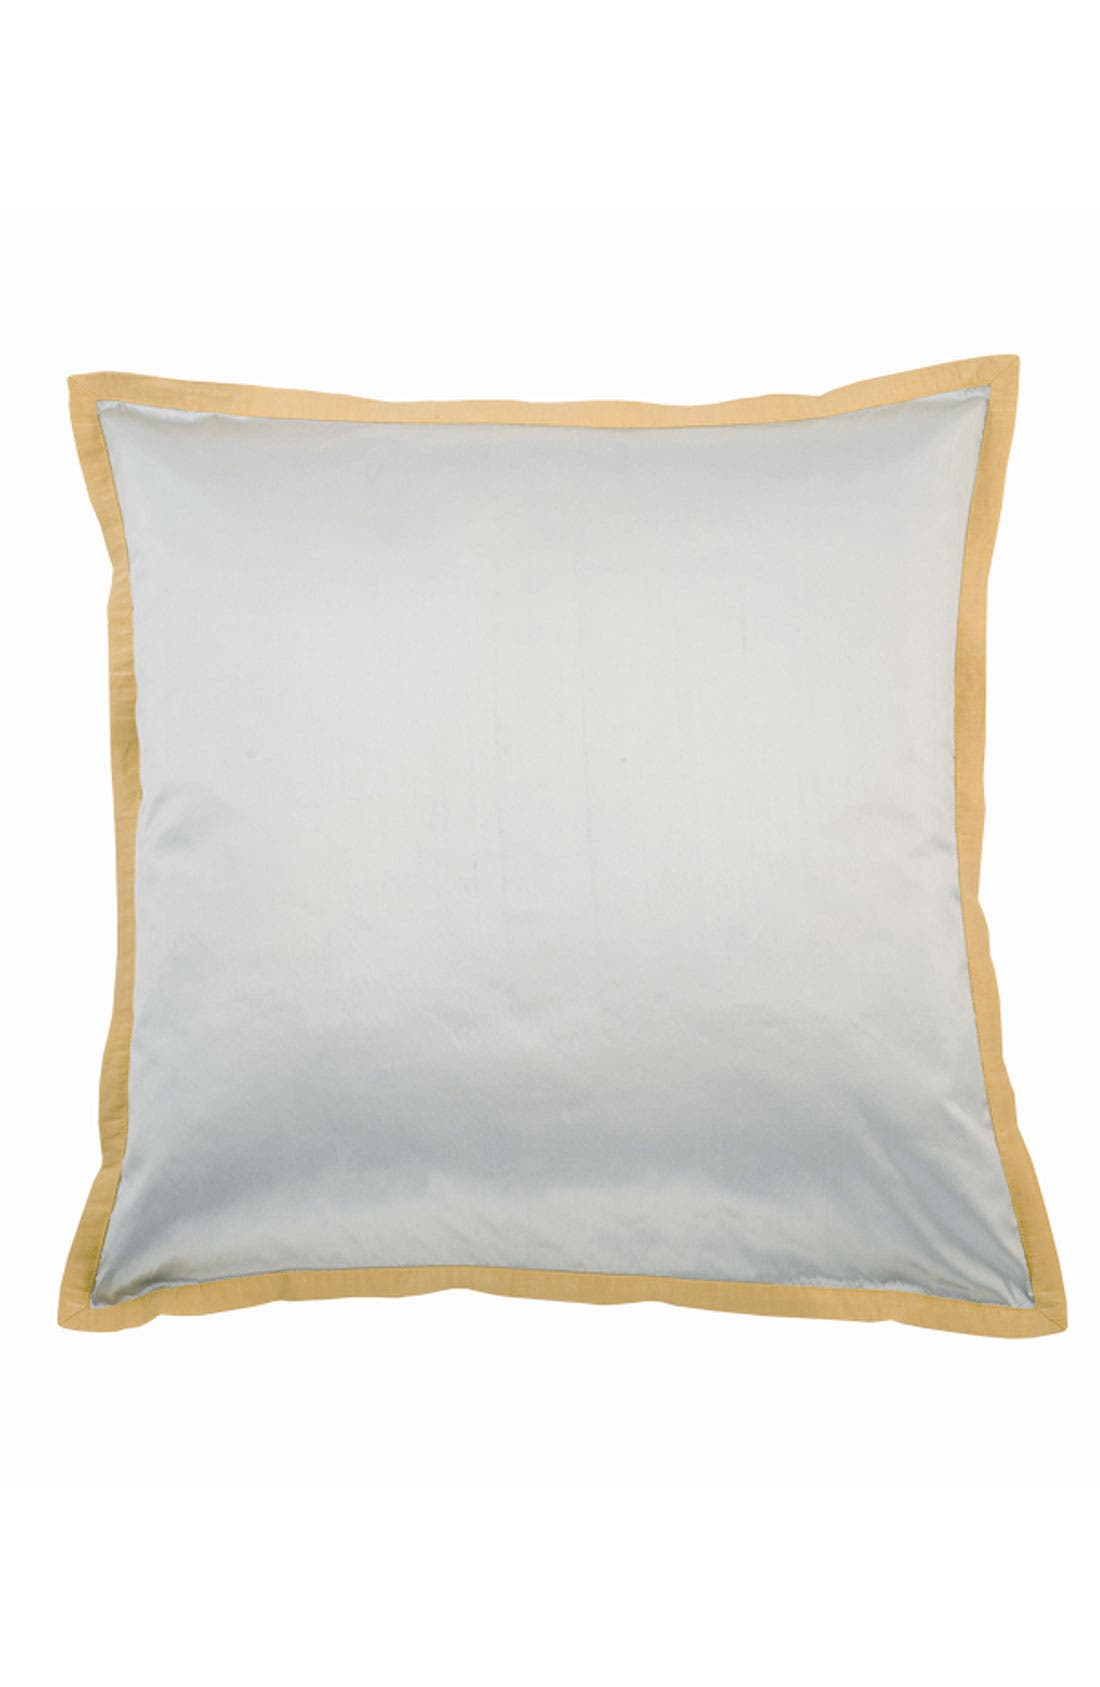 Main Image - Blissliving Home 'Caltha' Reversible Euro Pillow (Online Only)